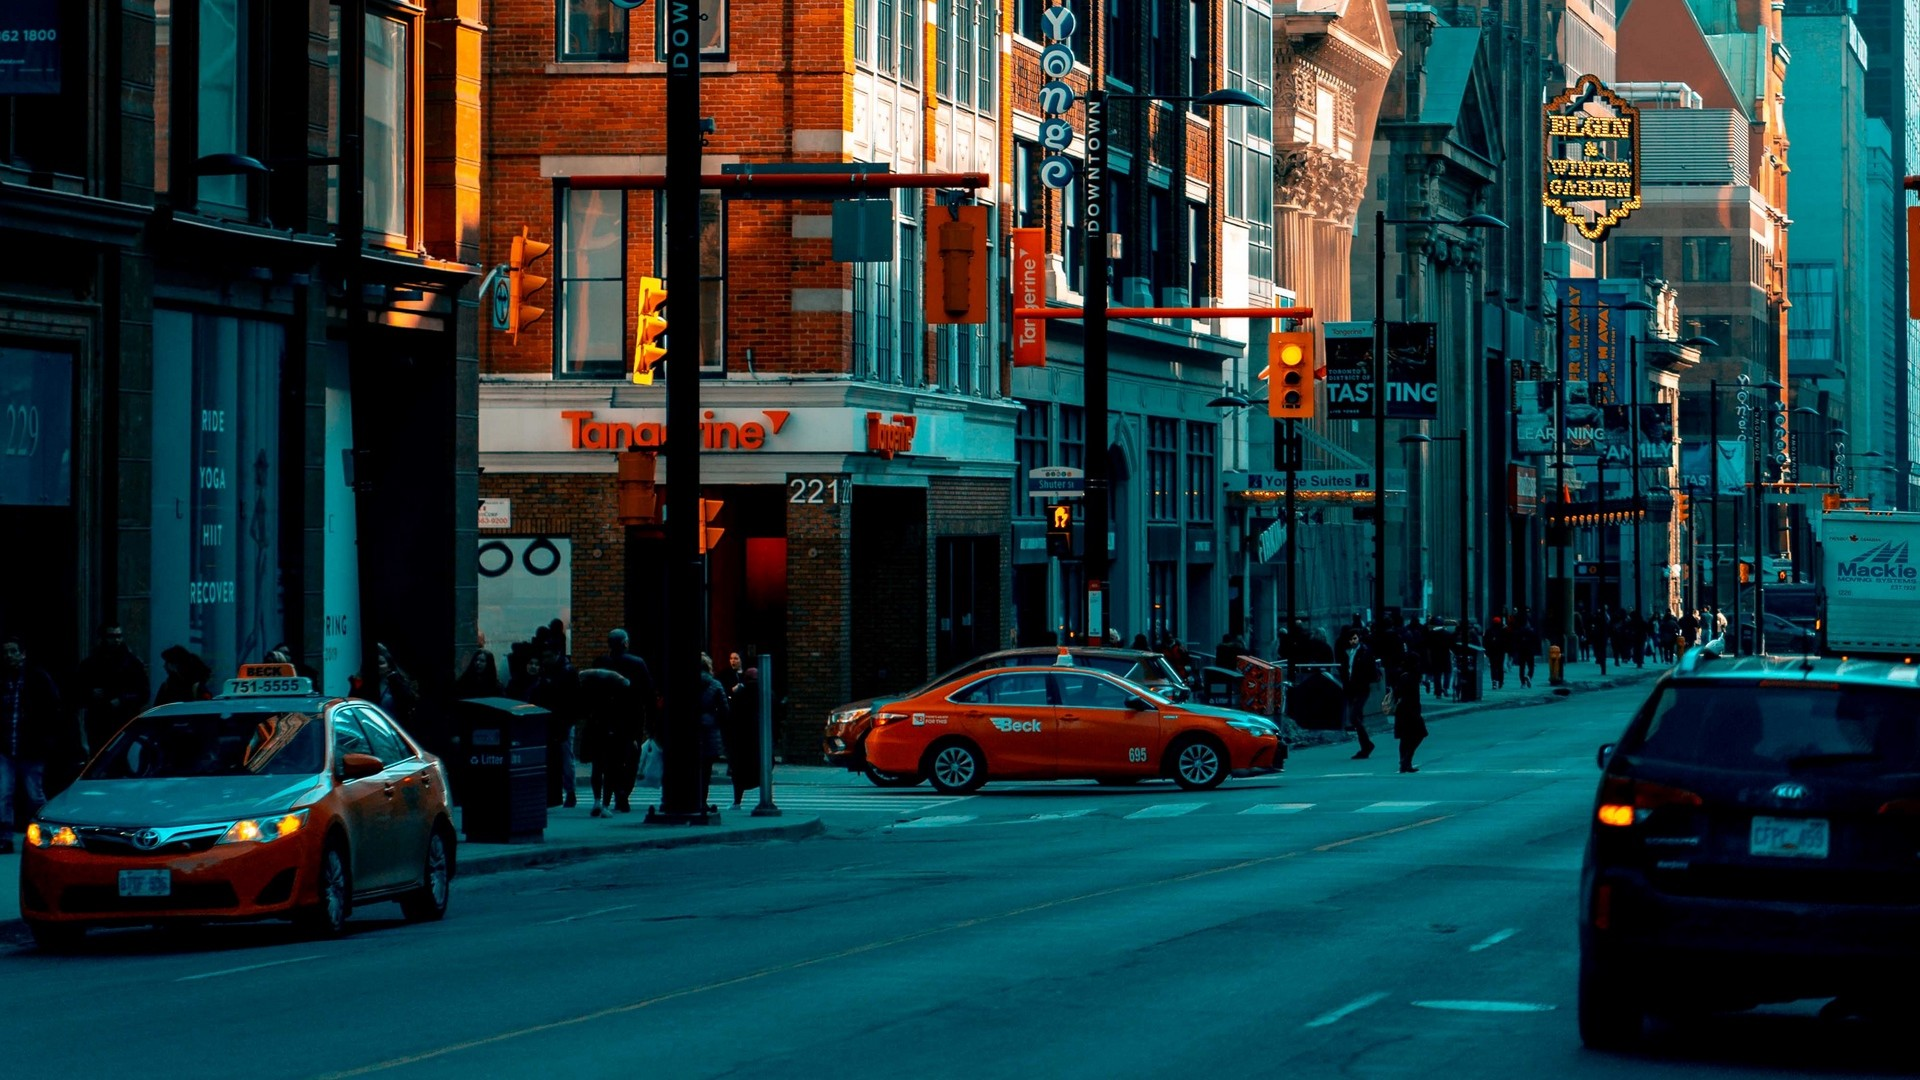 1920x1080  Wallpaper street, city, buildings, twilight, movement, road